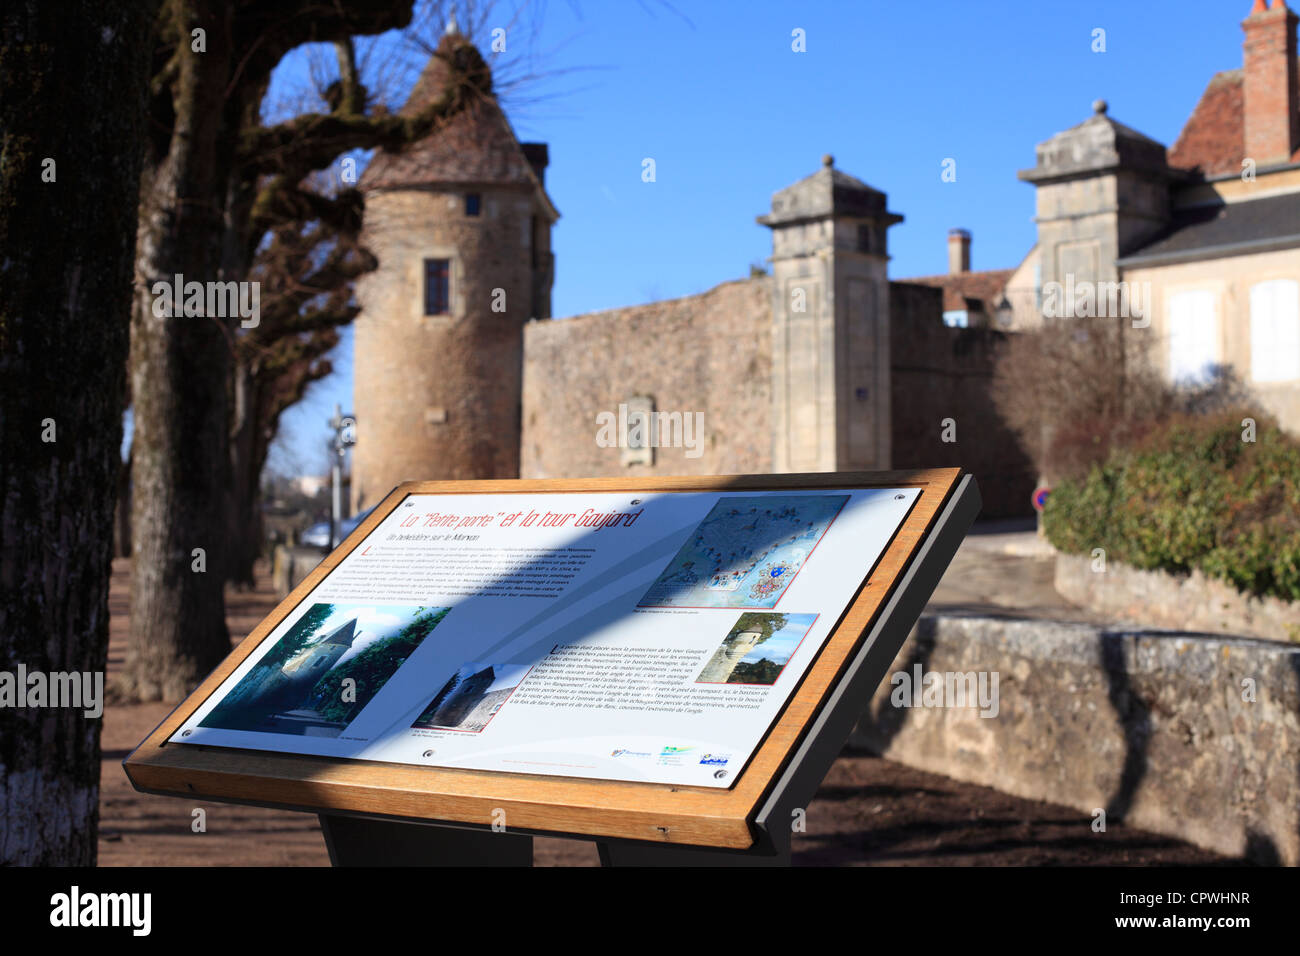 Walled entrance to Avallon in Burgundy, France - La Petite Porte and Gaujaud Tower. - Stock Image